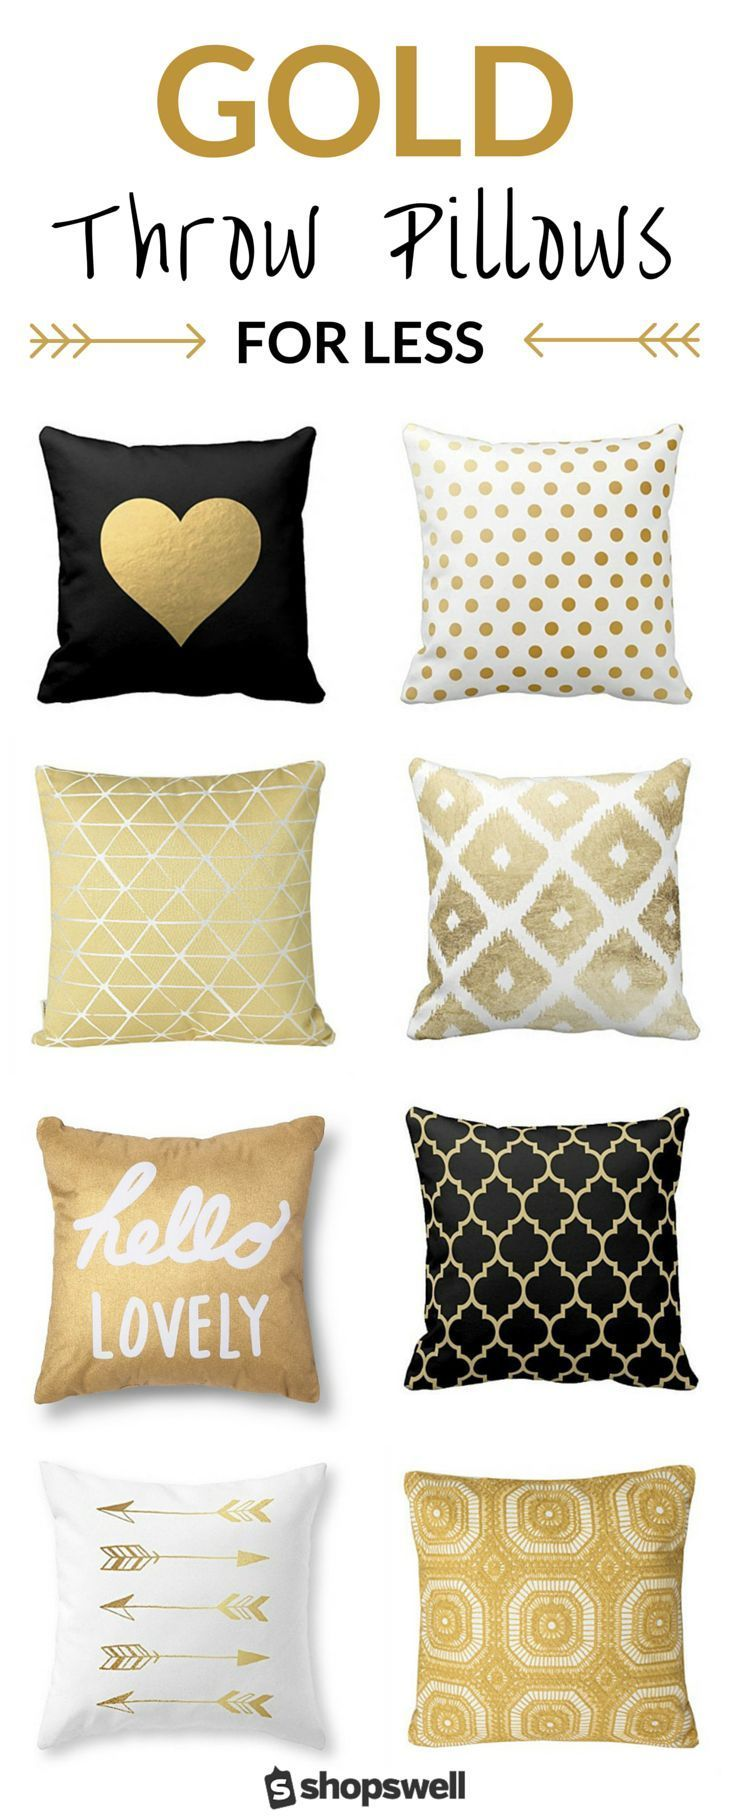 Bring the gold touch to your living space with one of these 20 chic, frugal, and fab throw pillows. Shop the collection now!